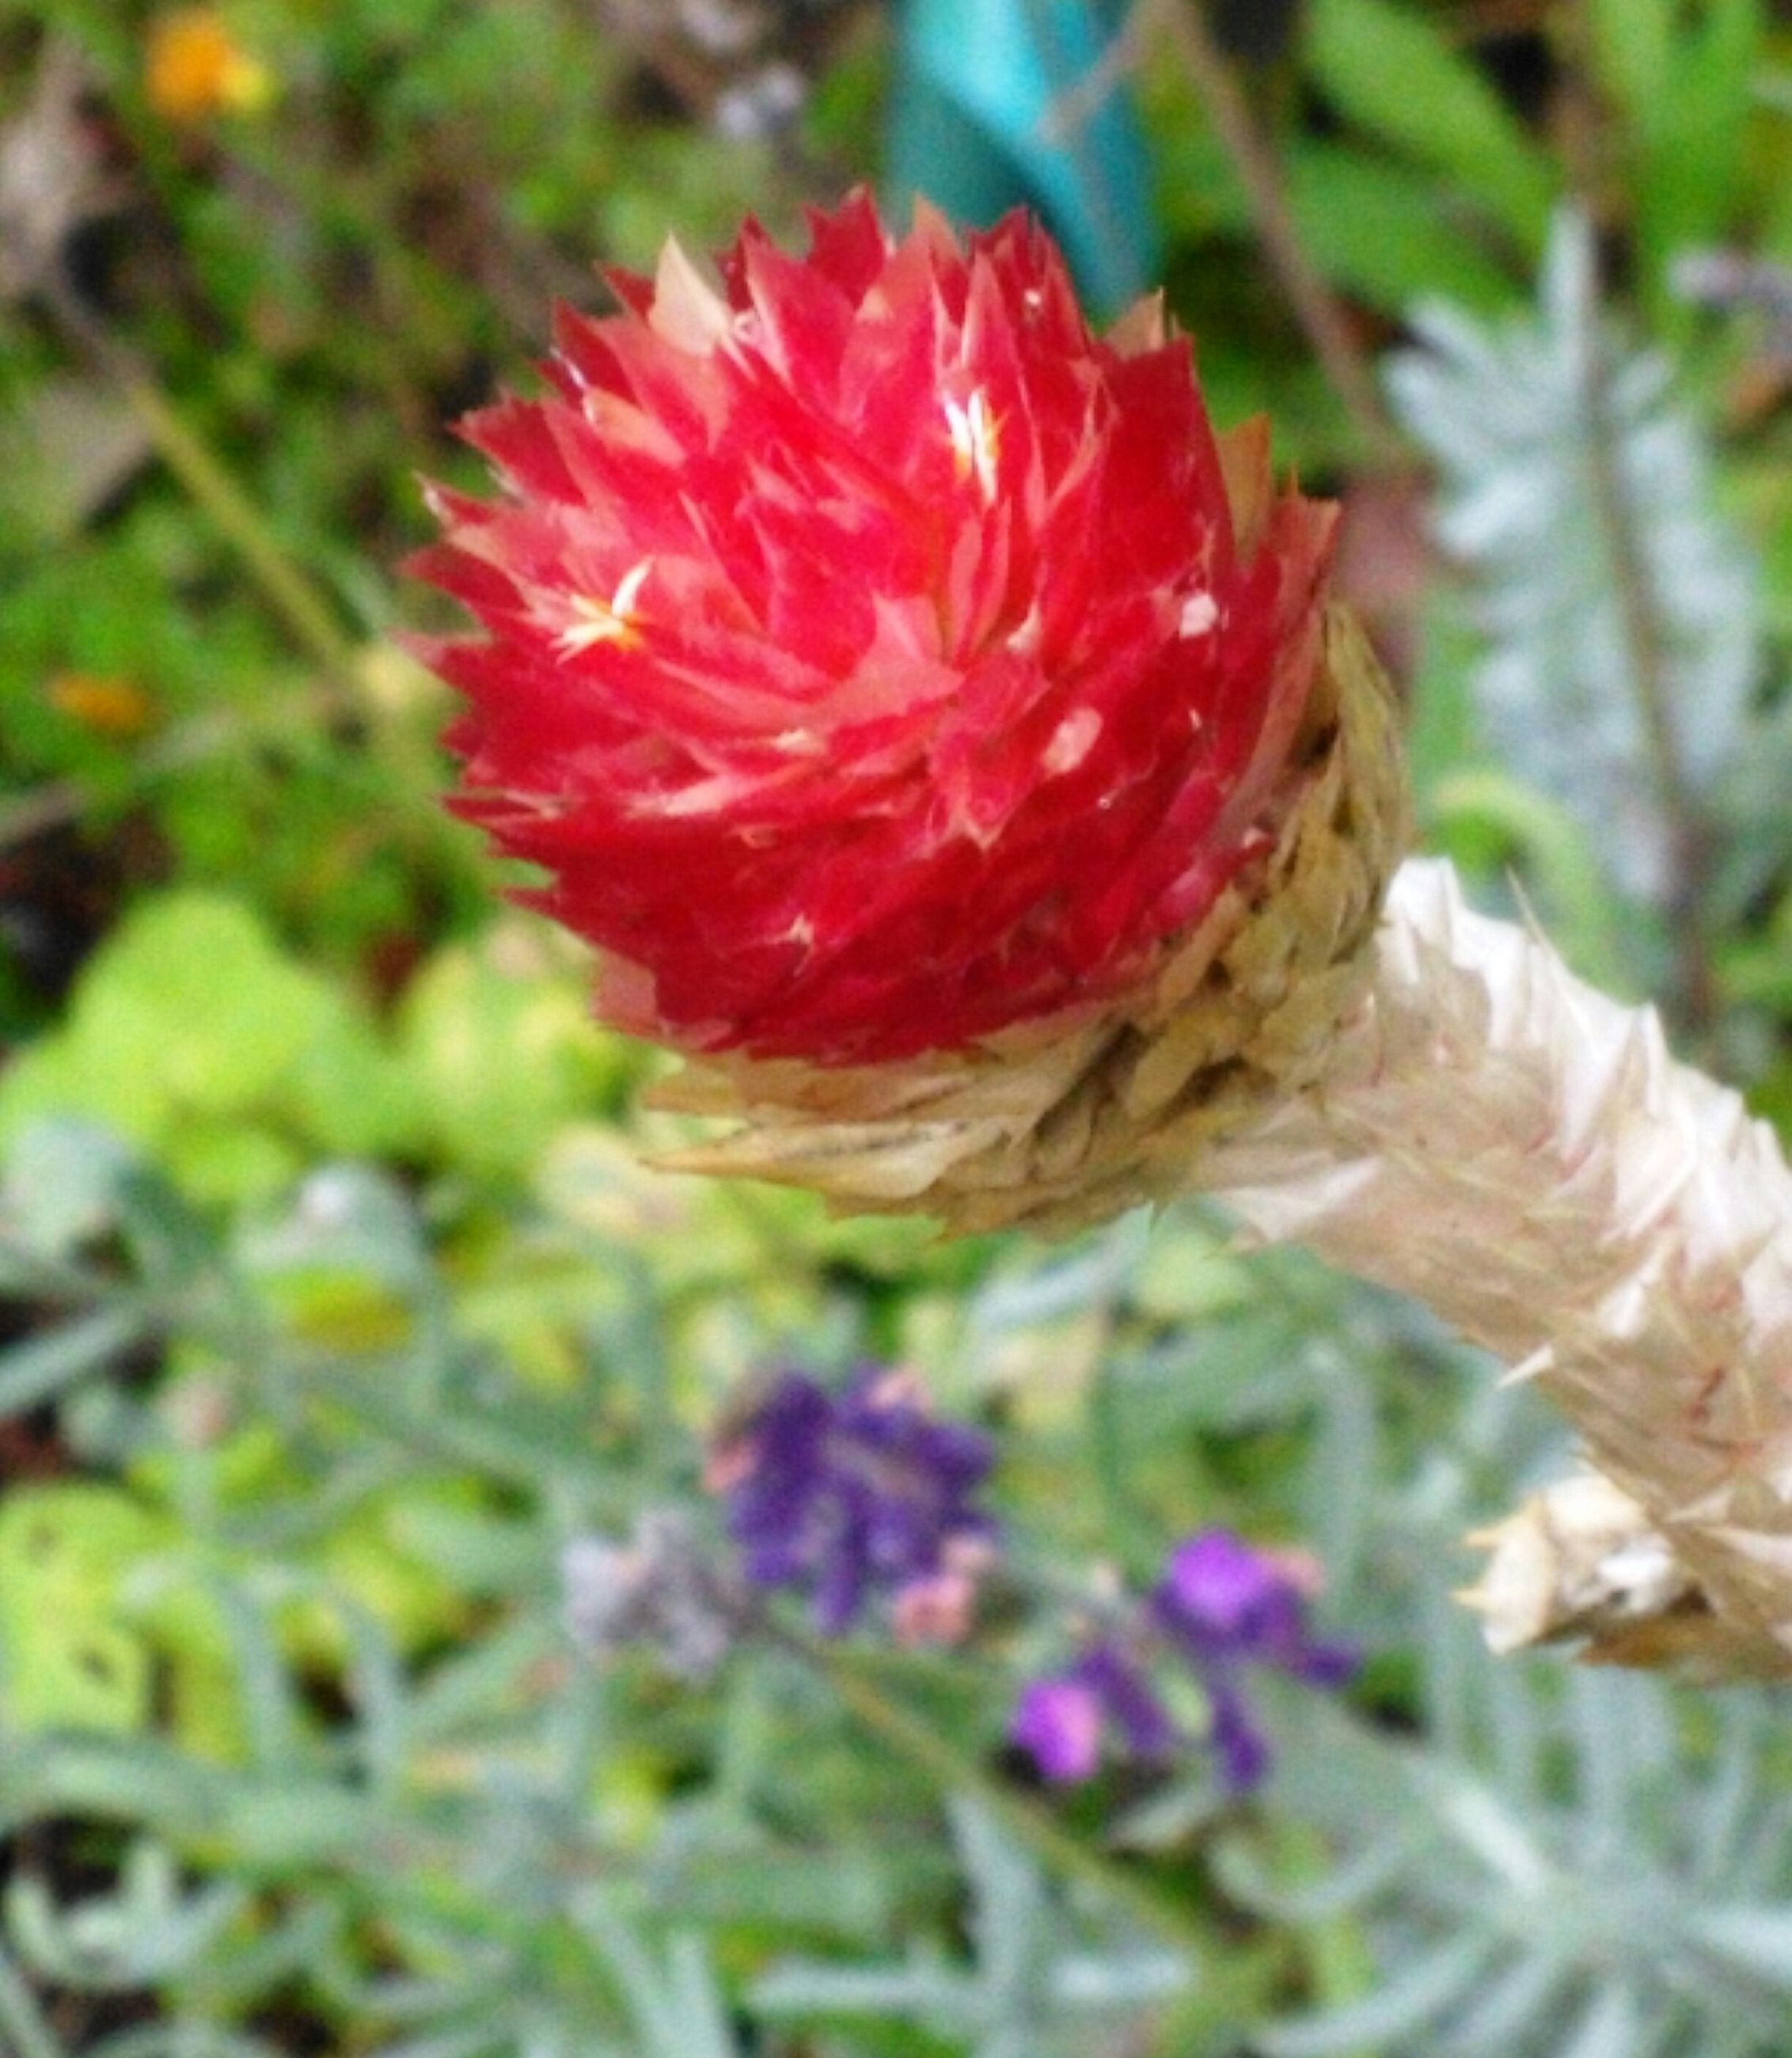 growth, flower, nature, red, plant, close-up, beauty in nature, freshness, outdoors, no people, day, fragility, flower head